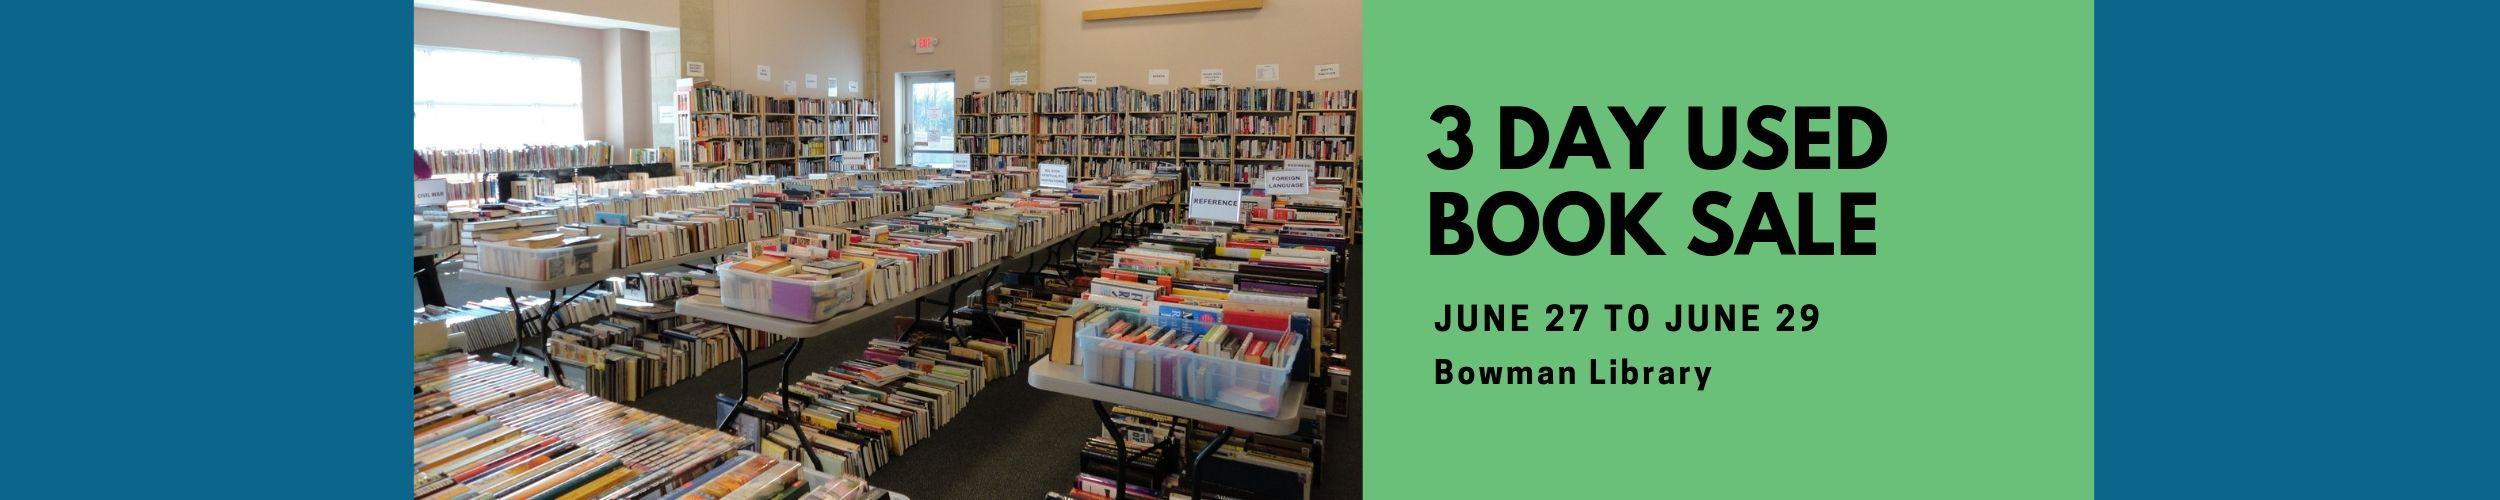 3 Day Used Book Sale